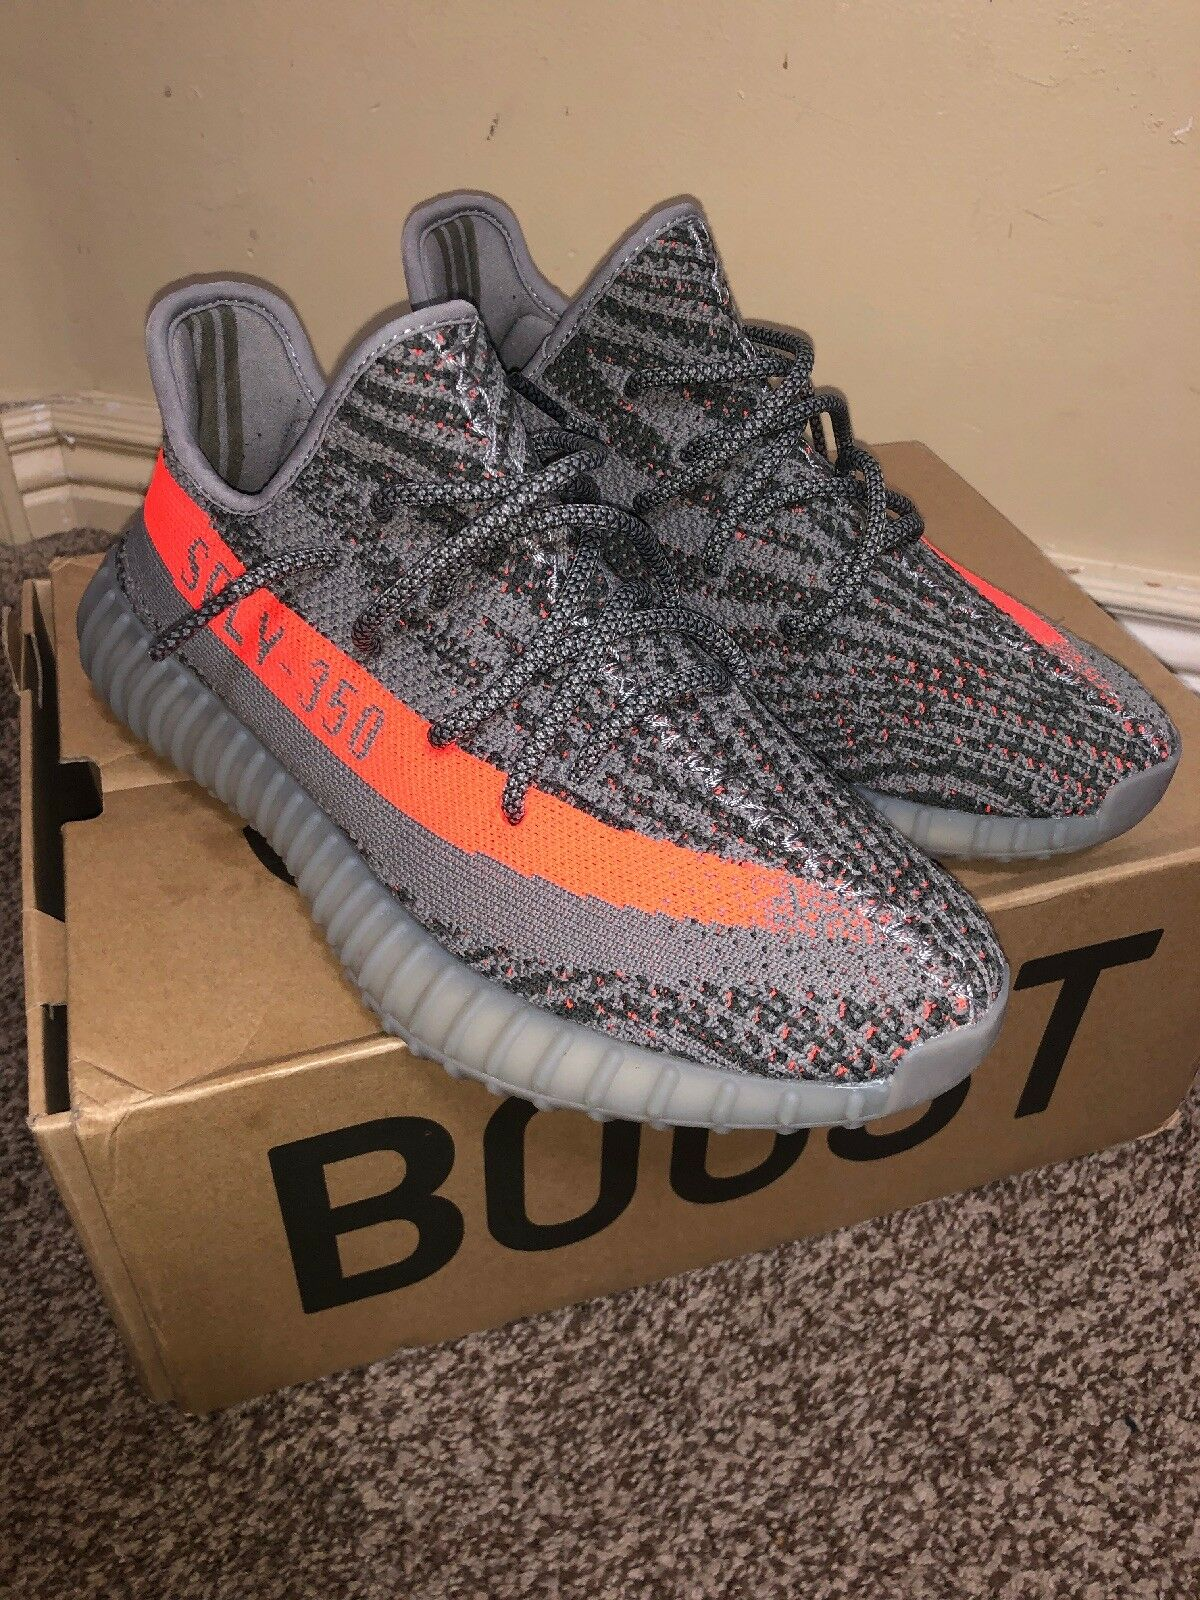 Adidas Men's Yeezy Boost 350 V2 Beluga shoes, Size 8.5, used 3x